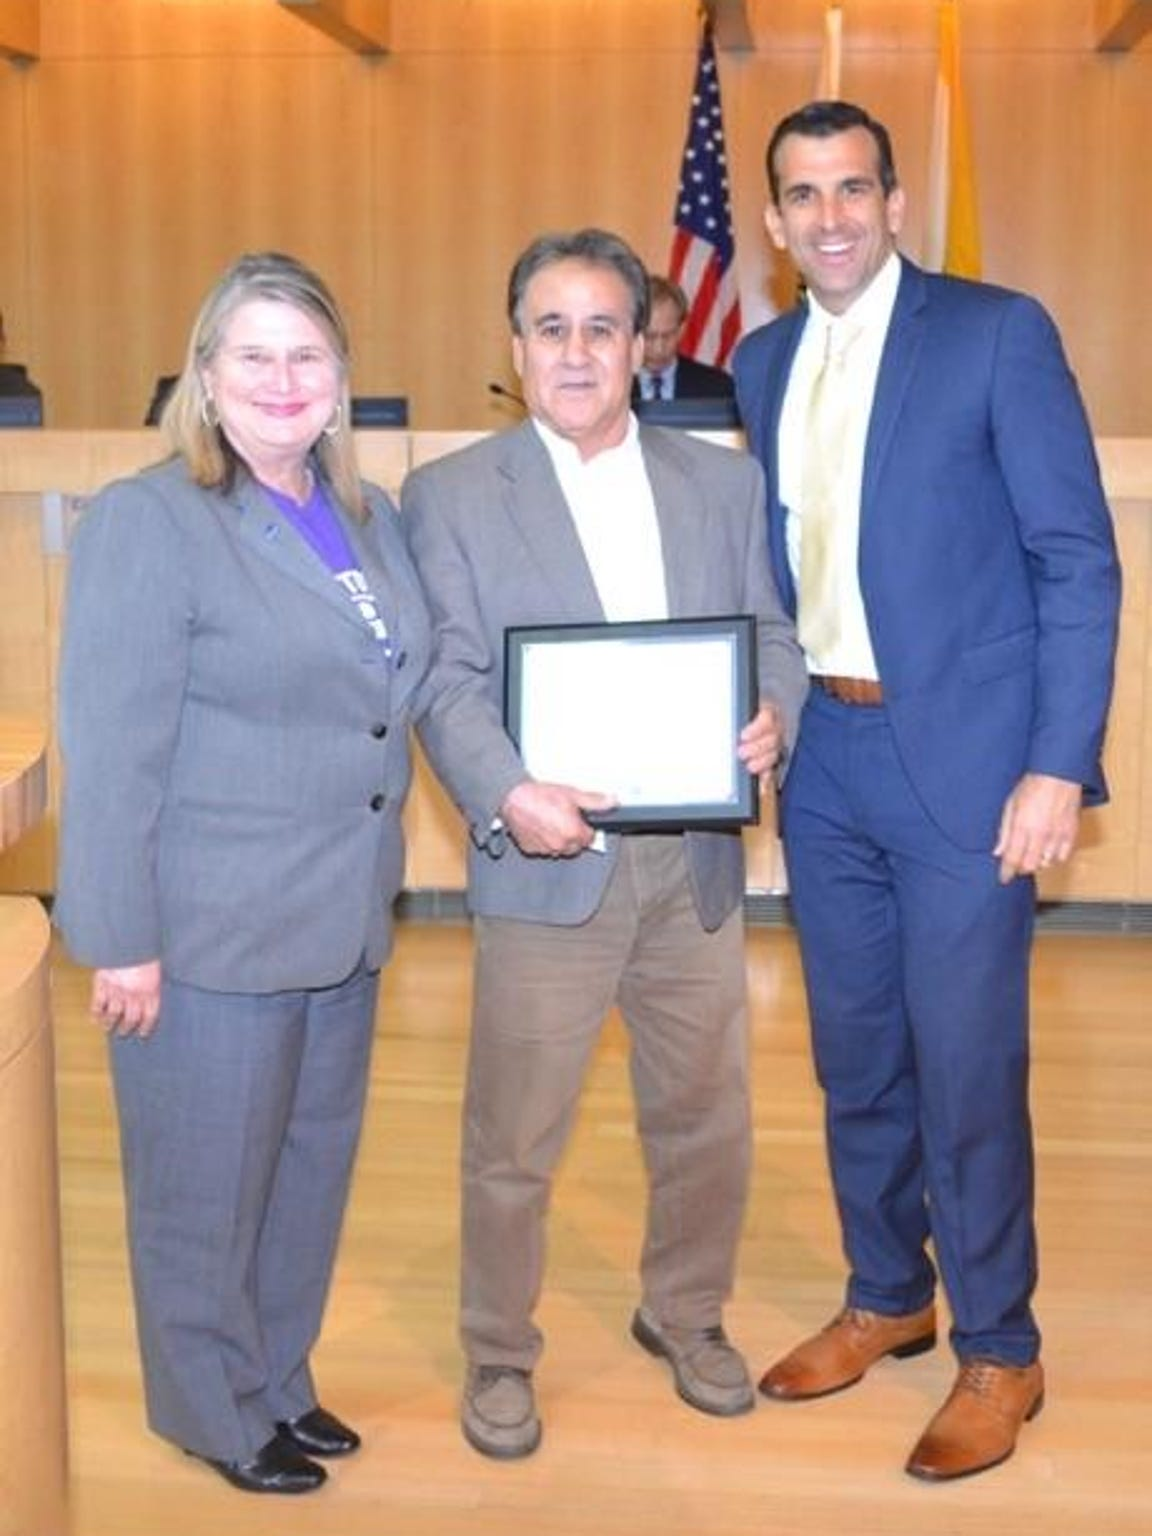 Rudy Guevara Commendation with Vice Mayor Rose Herrera and Mayor Sam Liccard